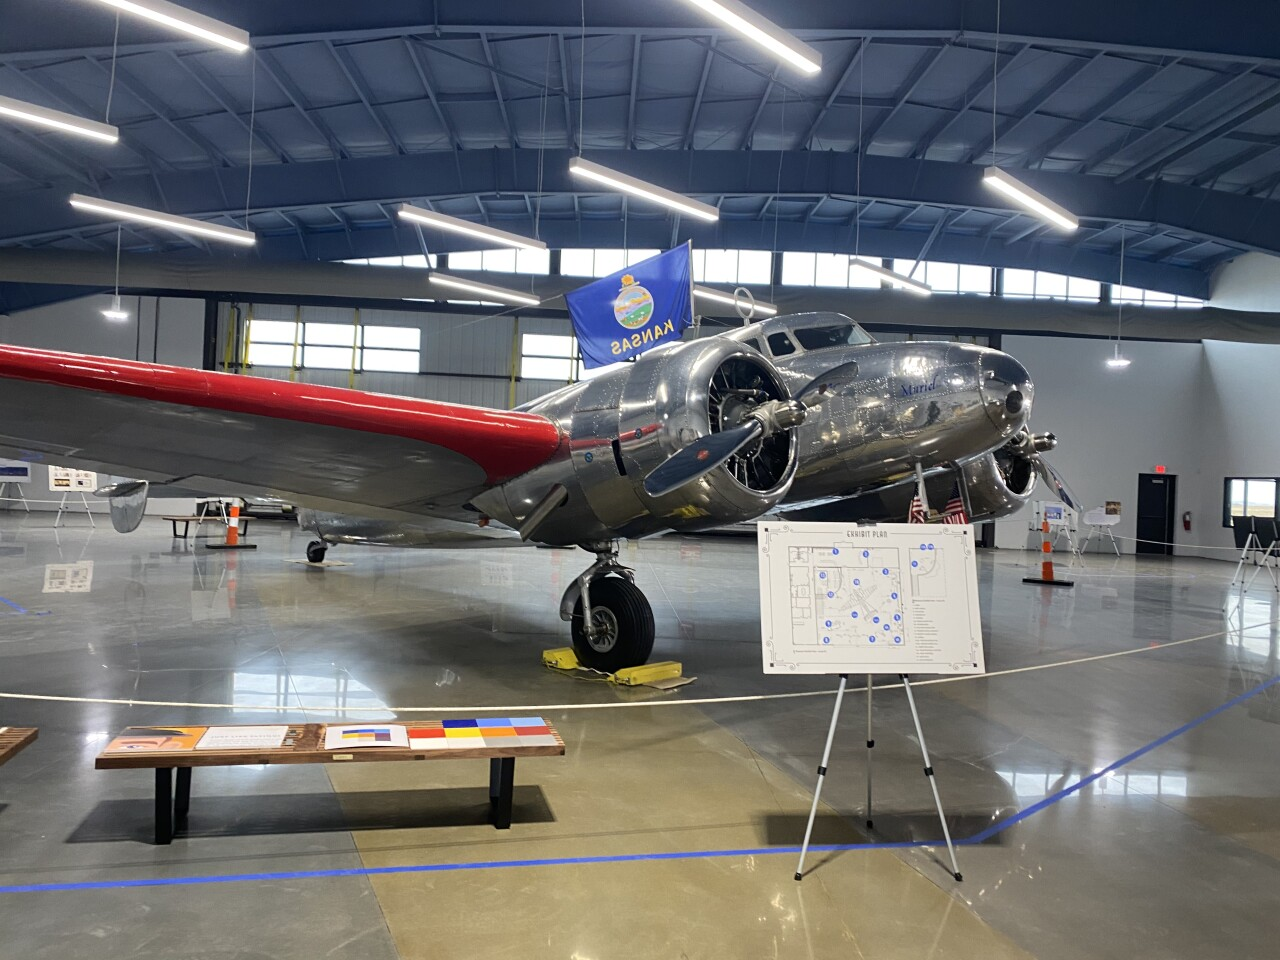 The exact plane model Earhart disappeared in in 1937.